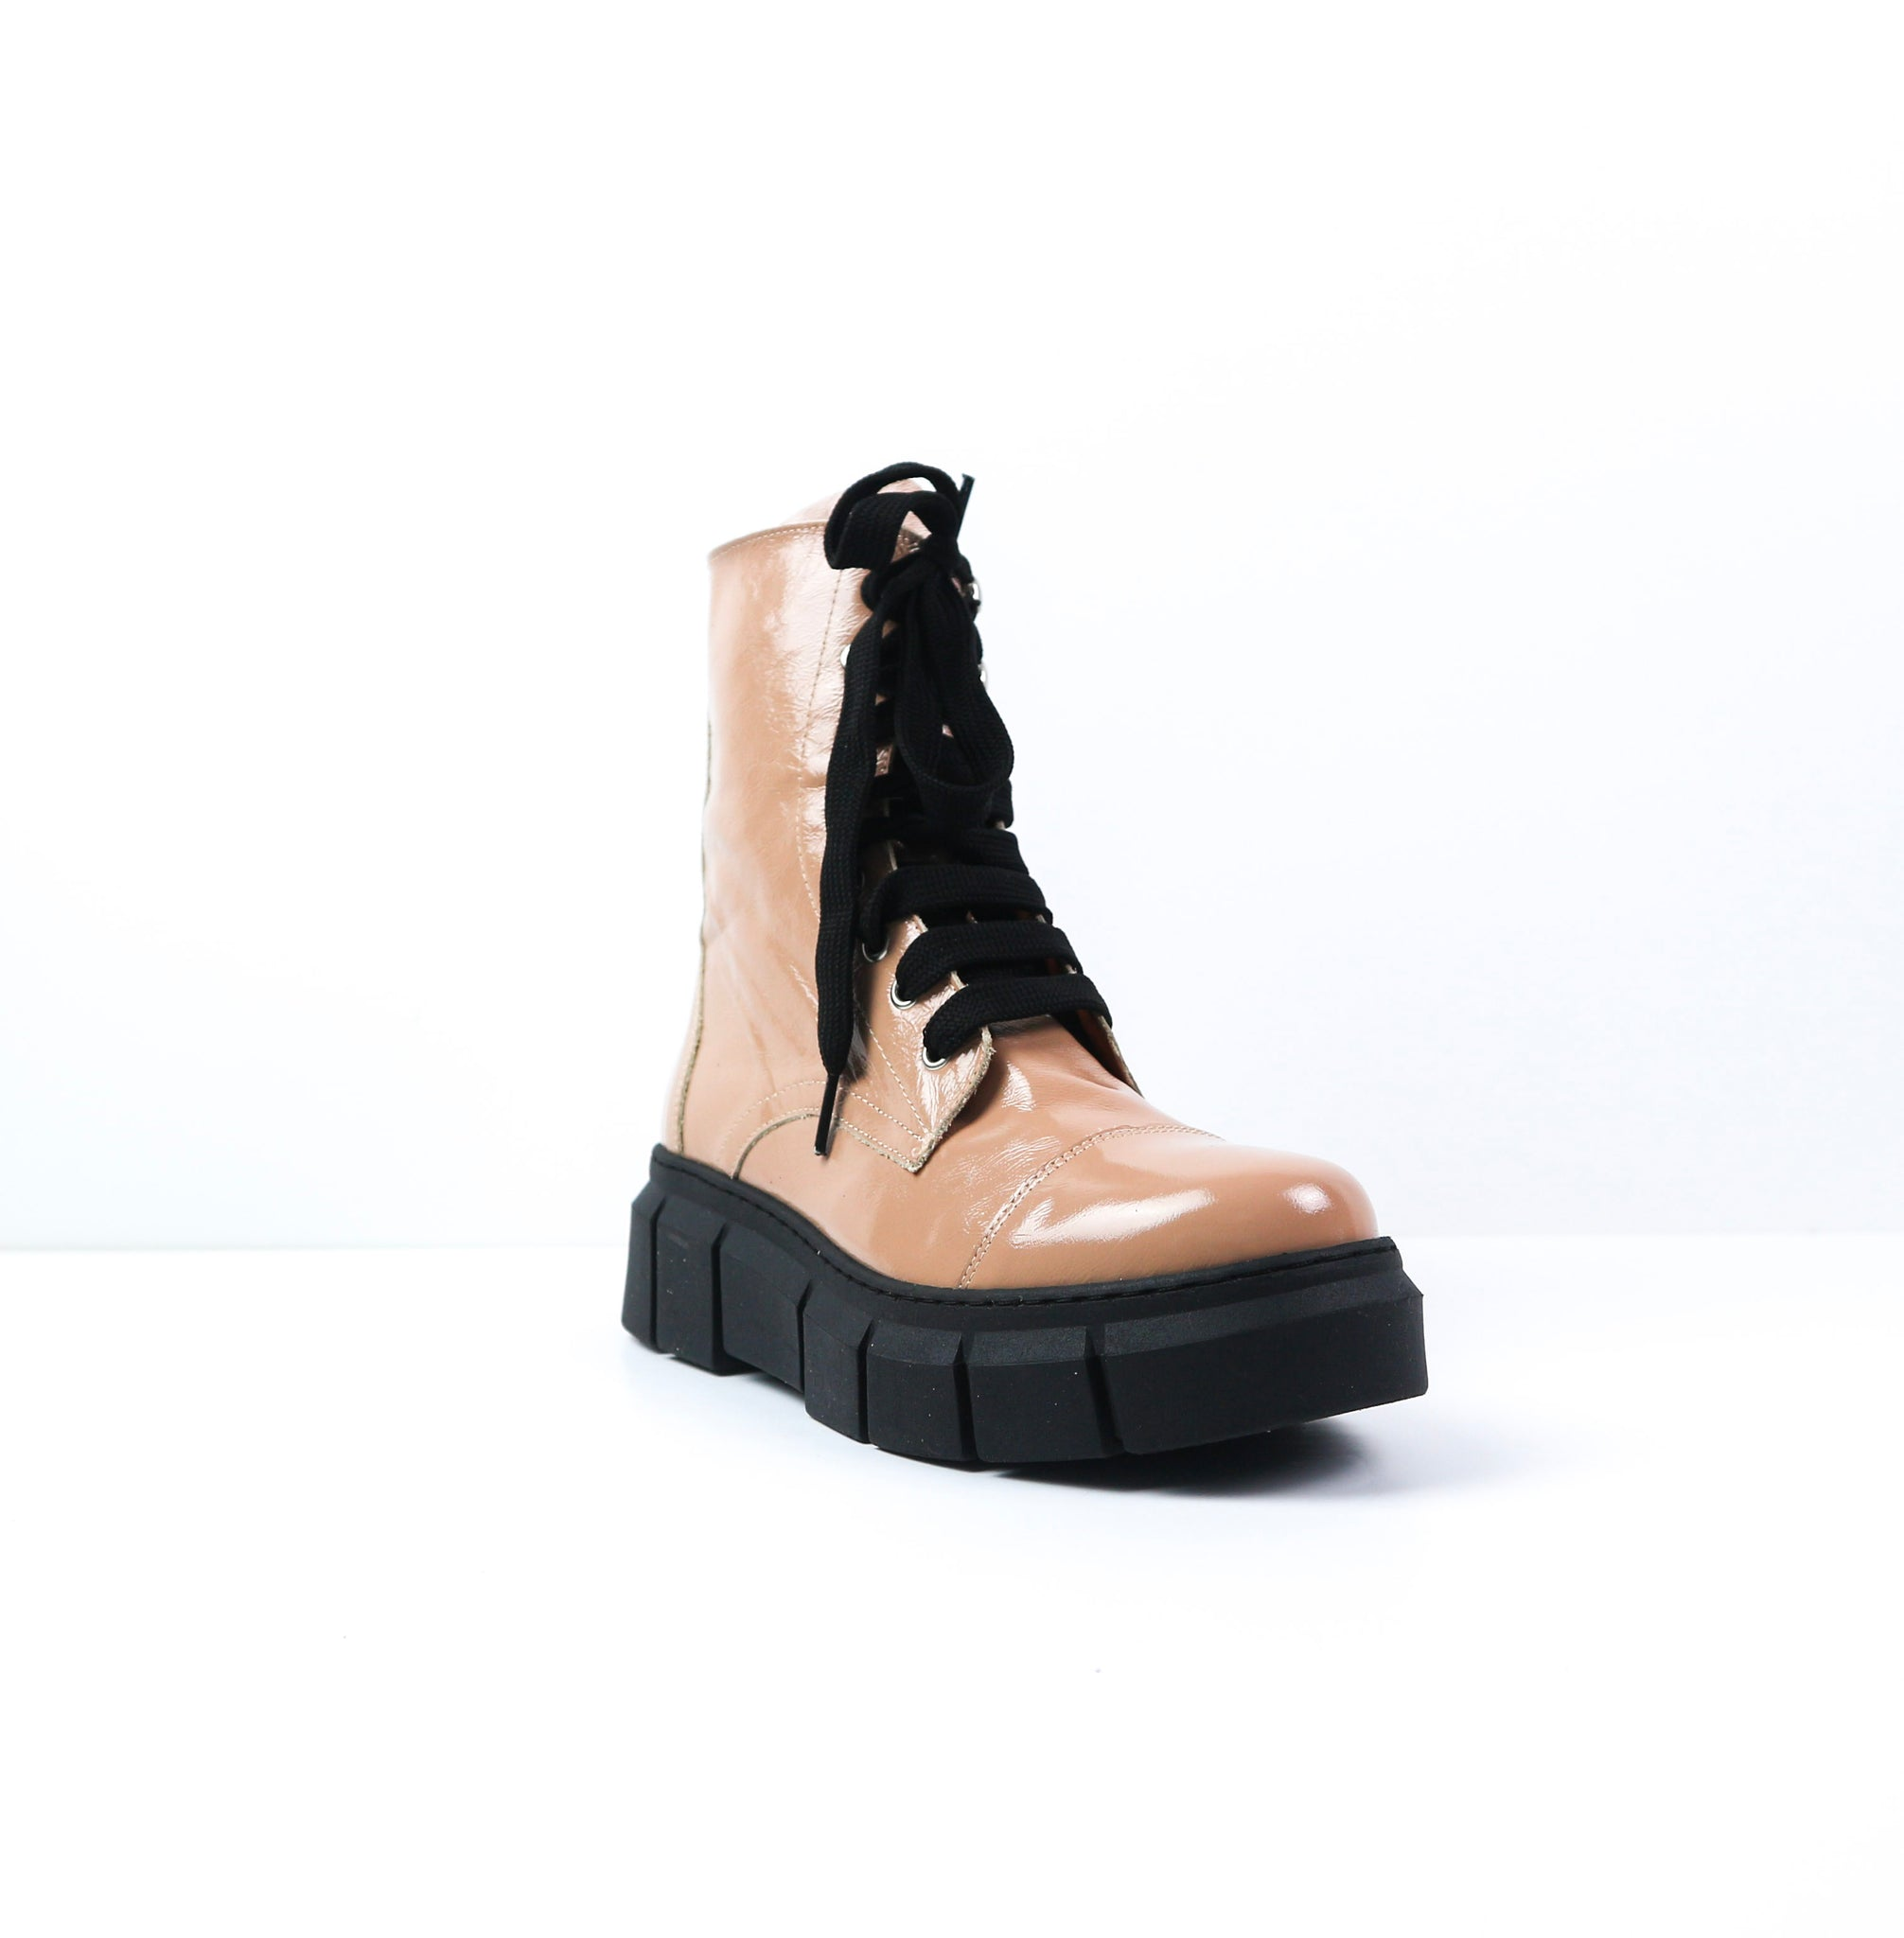 ALEXI | Pink Leather Boots - TrystShoes